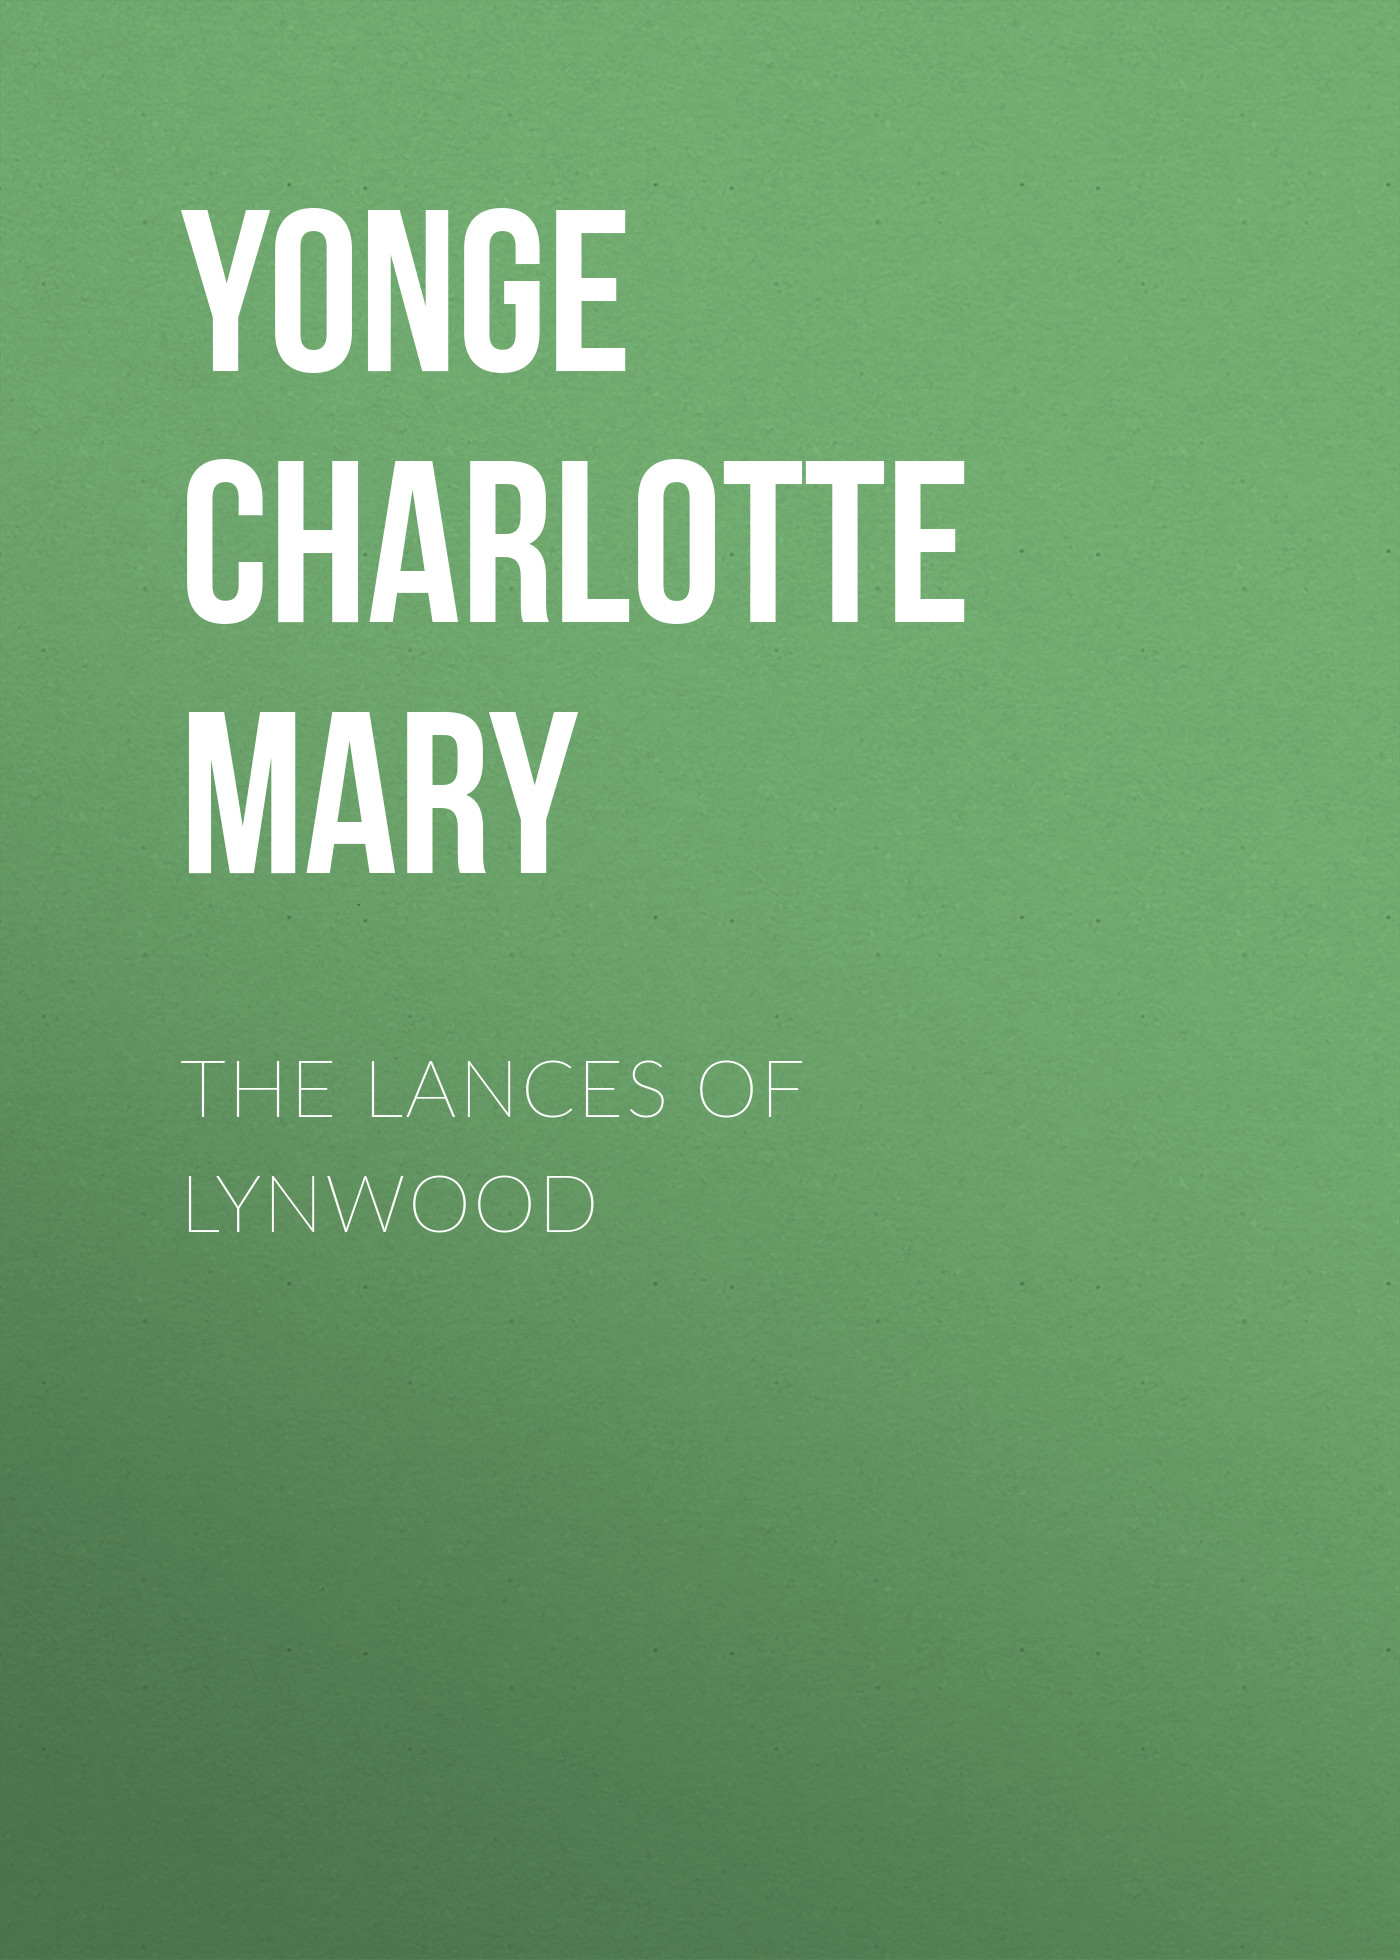 Yonge Charlotte Mary The Lances of Lynwood yonge charlotte mary history of france